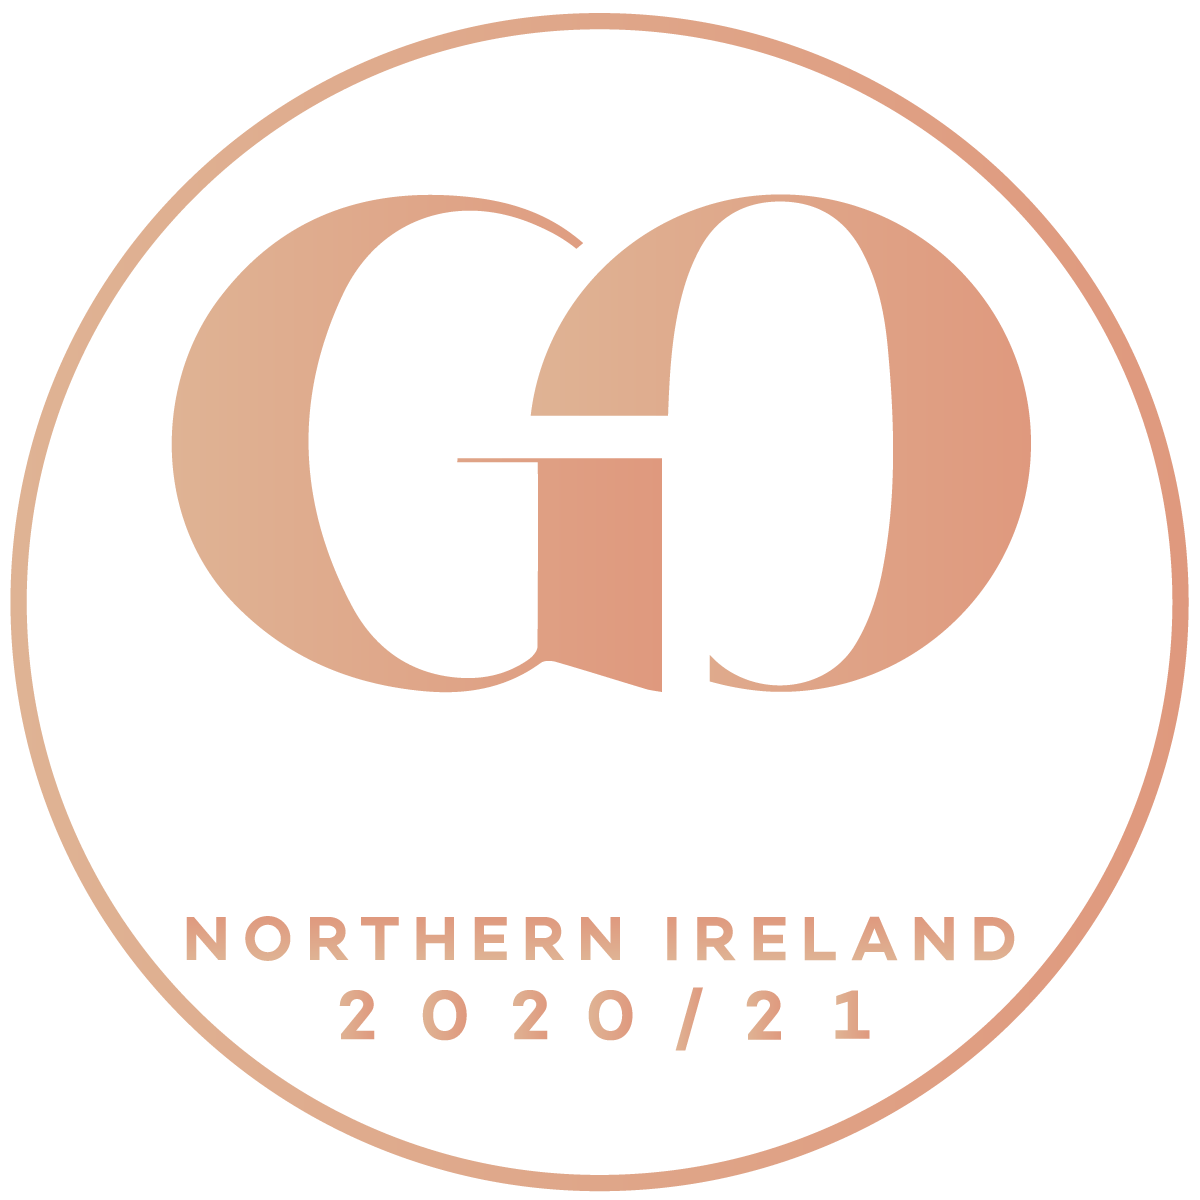 go-awards-northern-ireland